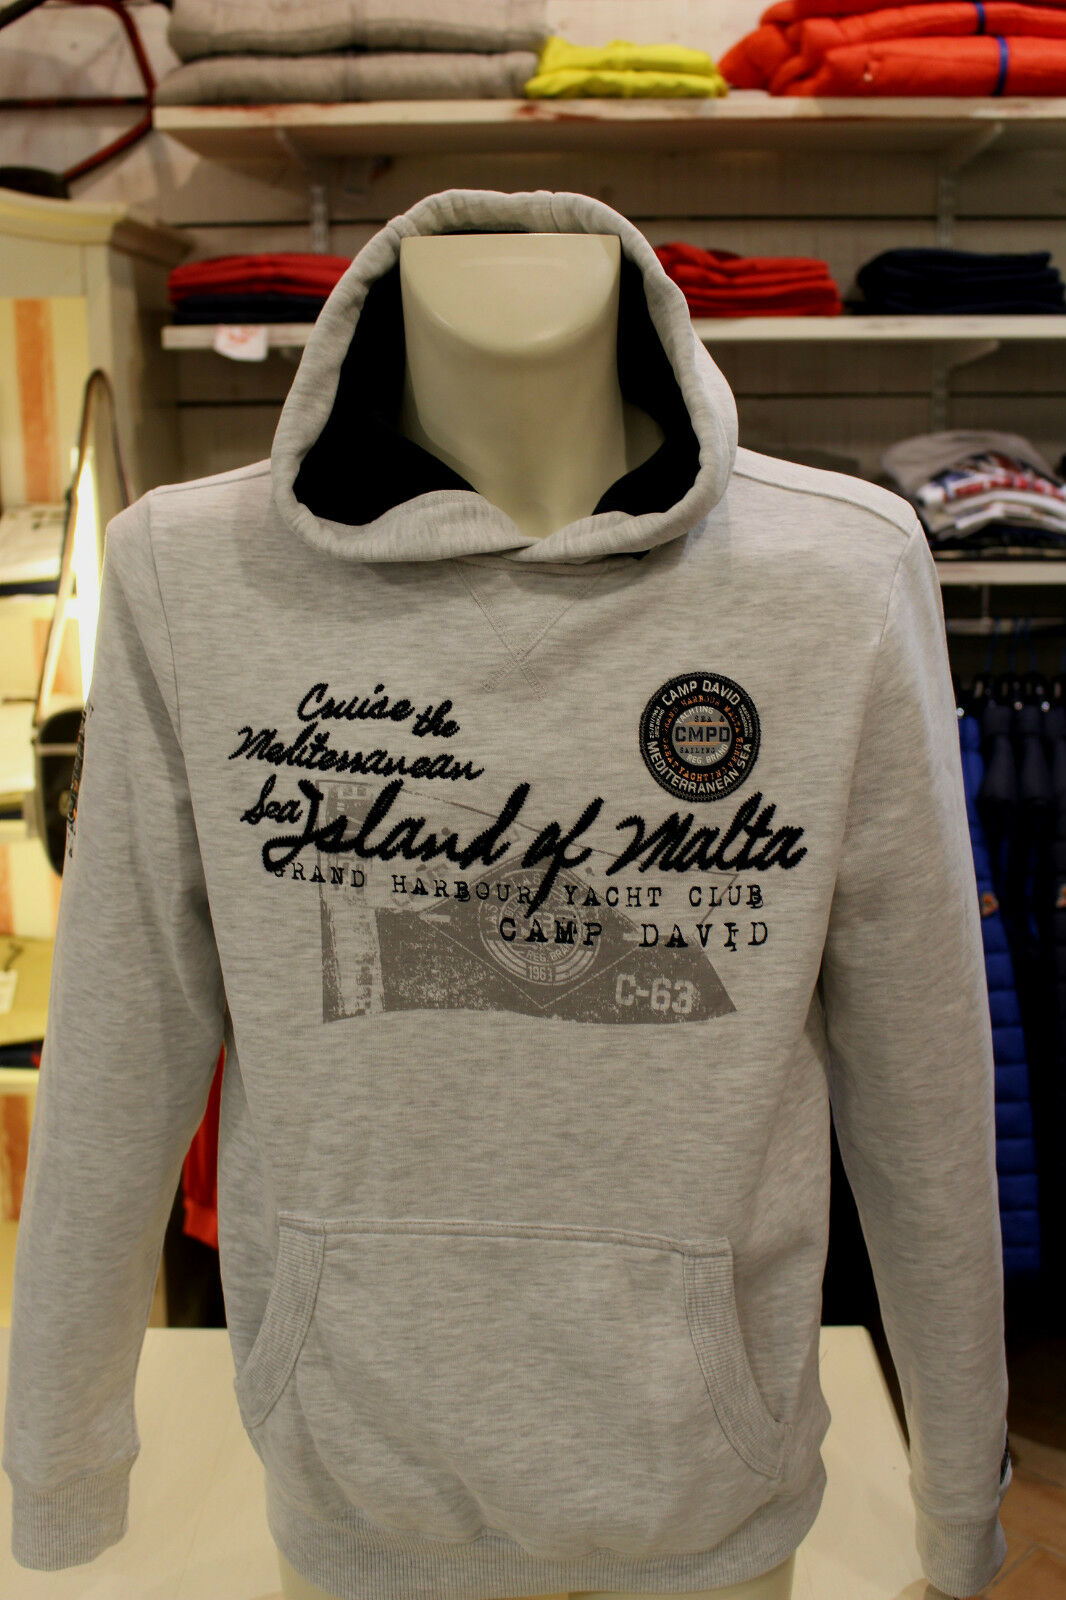 CAMP DAVID,Sweatshirt,Kapuze,Neue Koll.,Blau oder Grau, Fleece-Futter,Origin